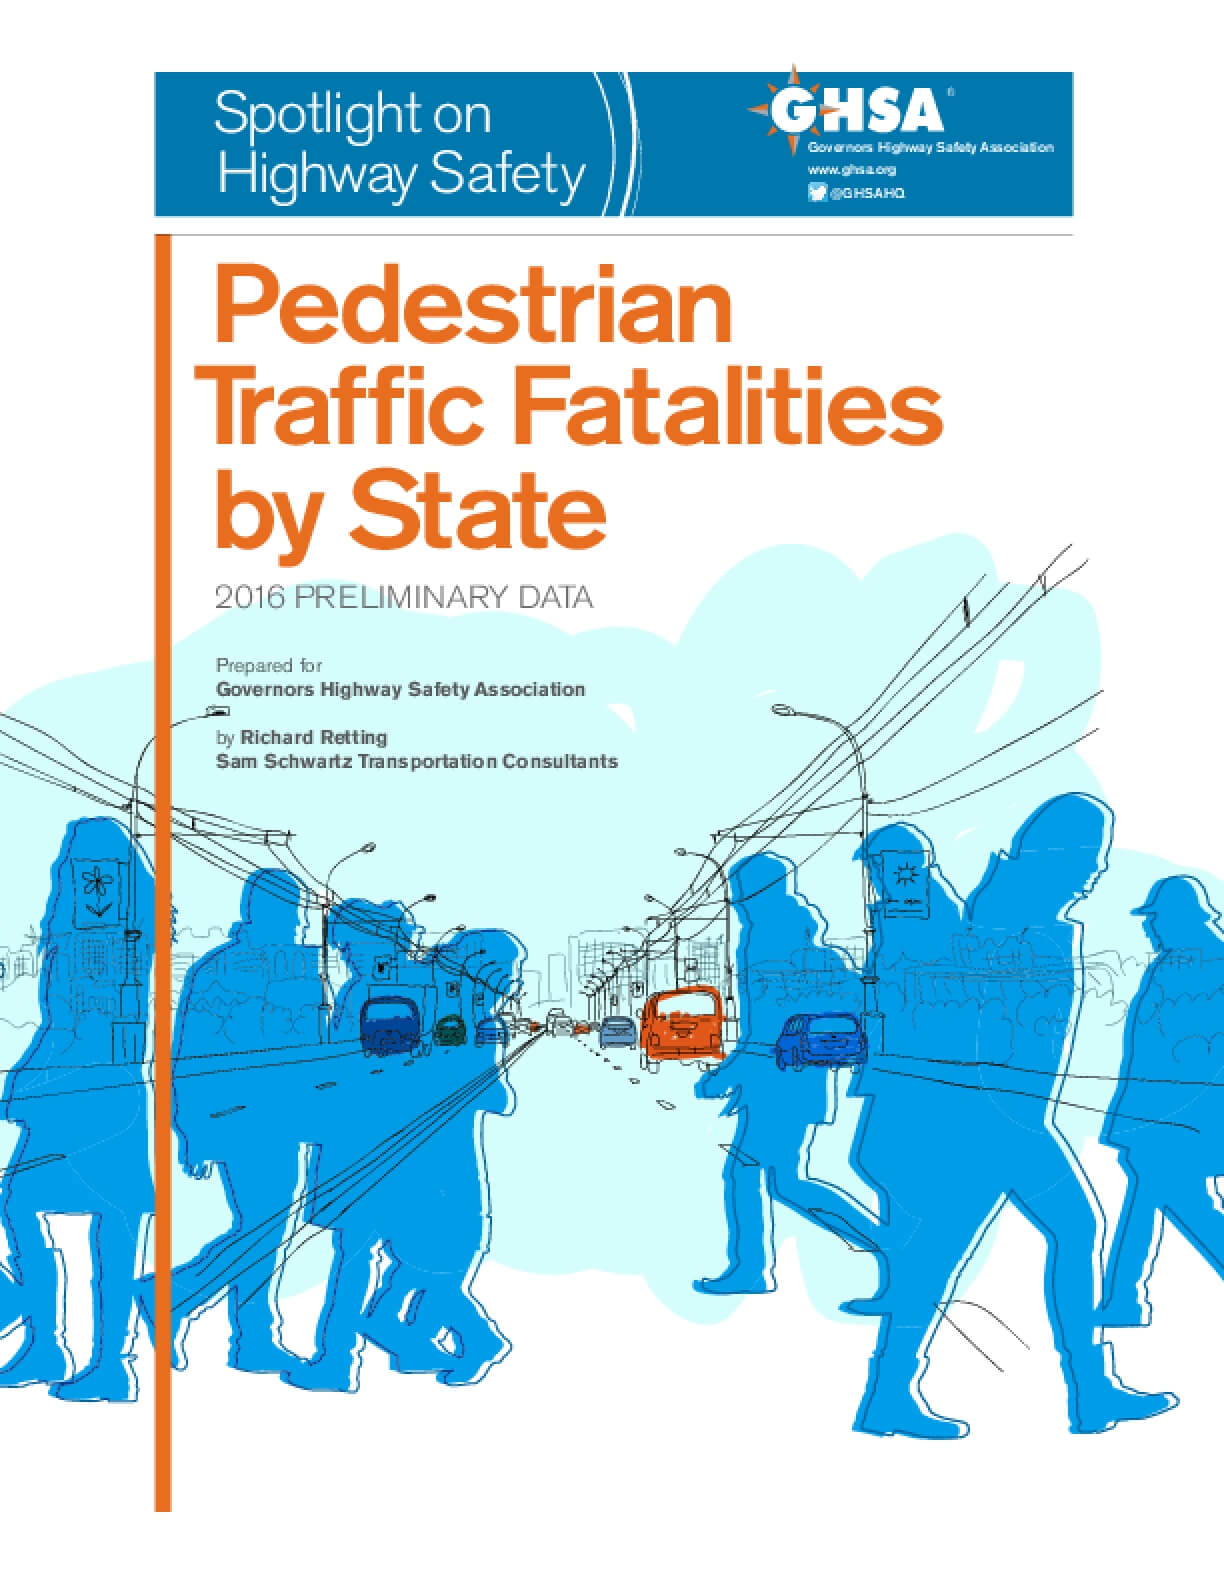 Pedestrian Traffic Fatalities by State: 2016 Preliminary Data